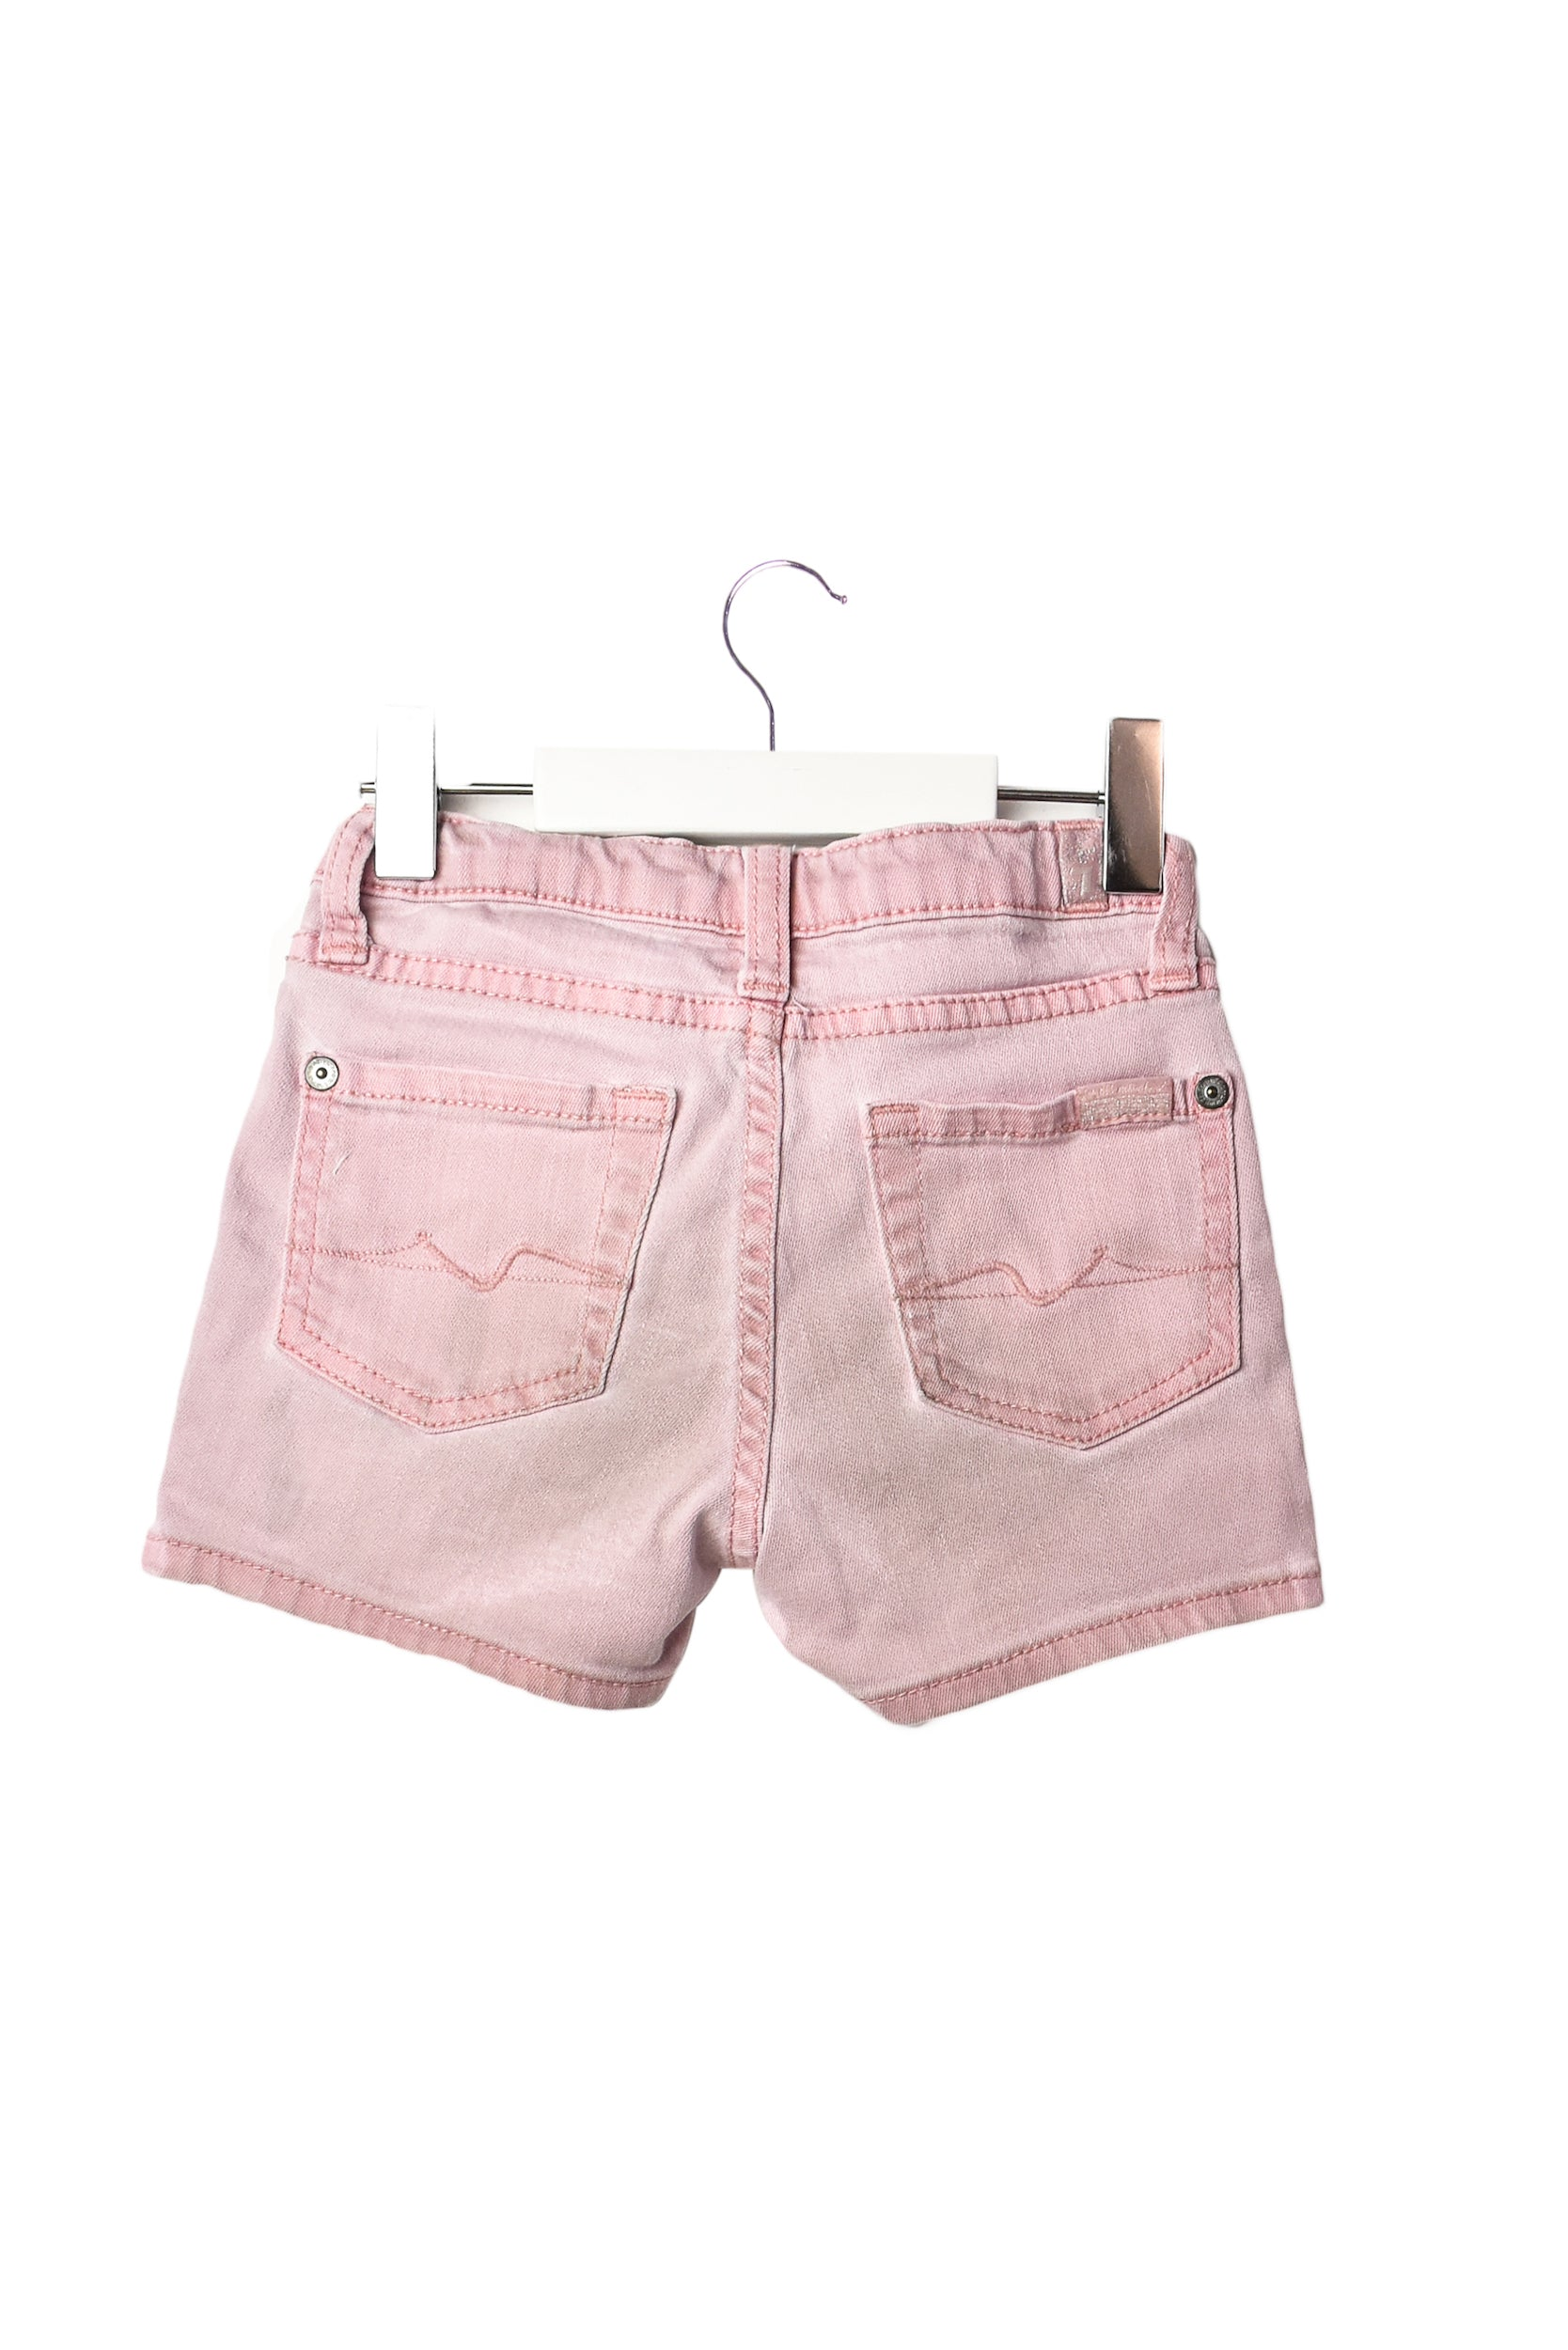 10006258 7 For All Mankind Kids~Shorts 4T at Retykle